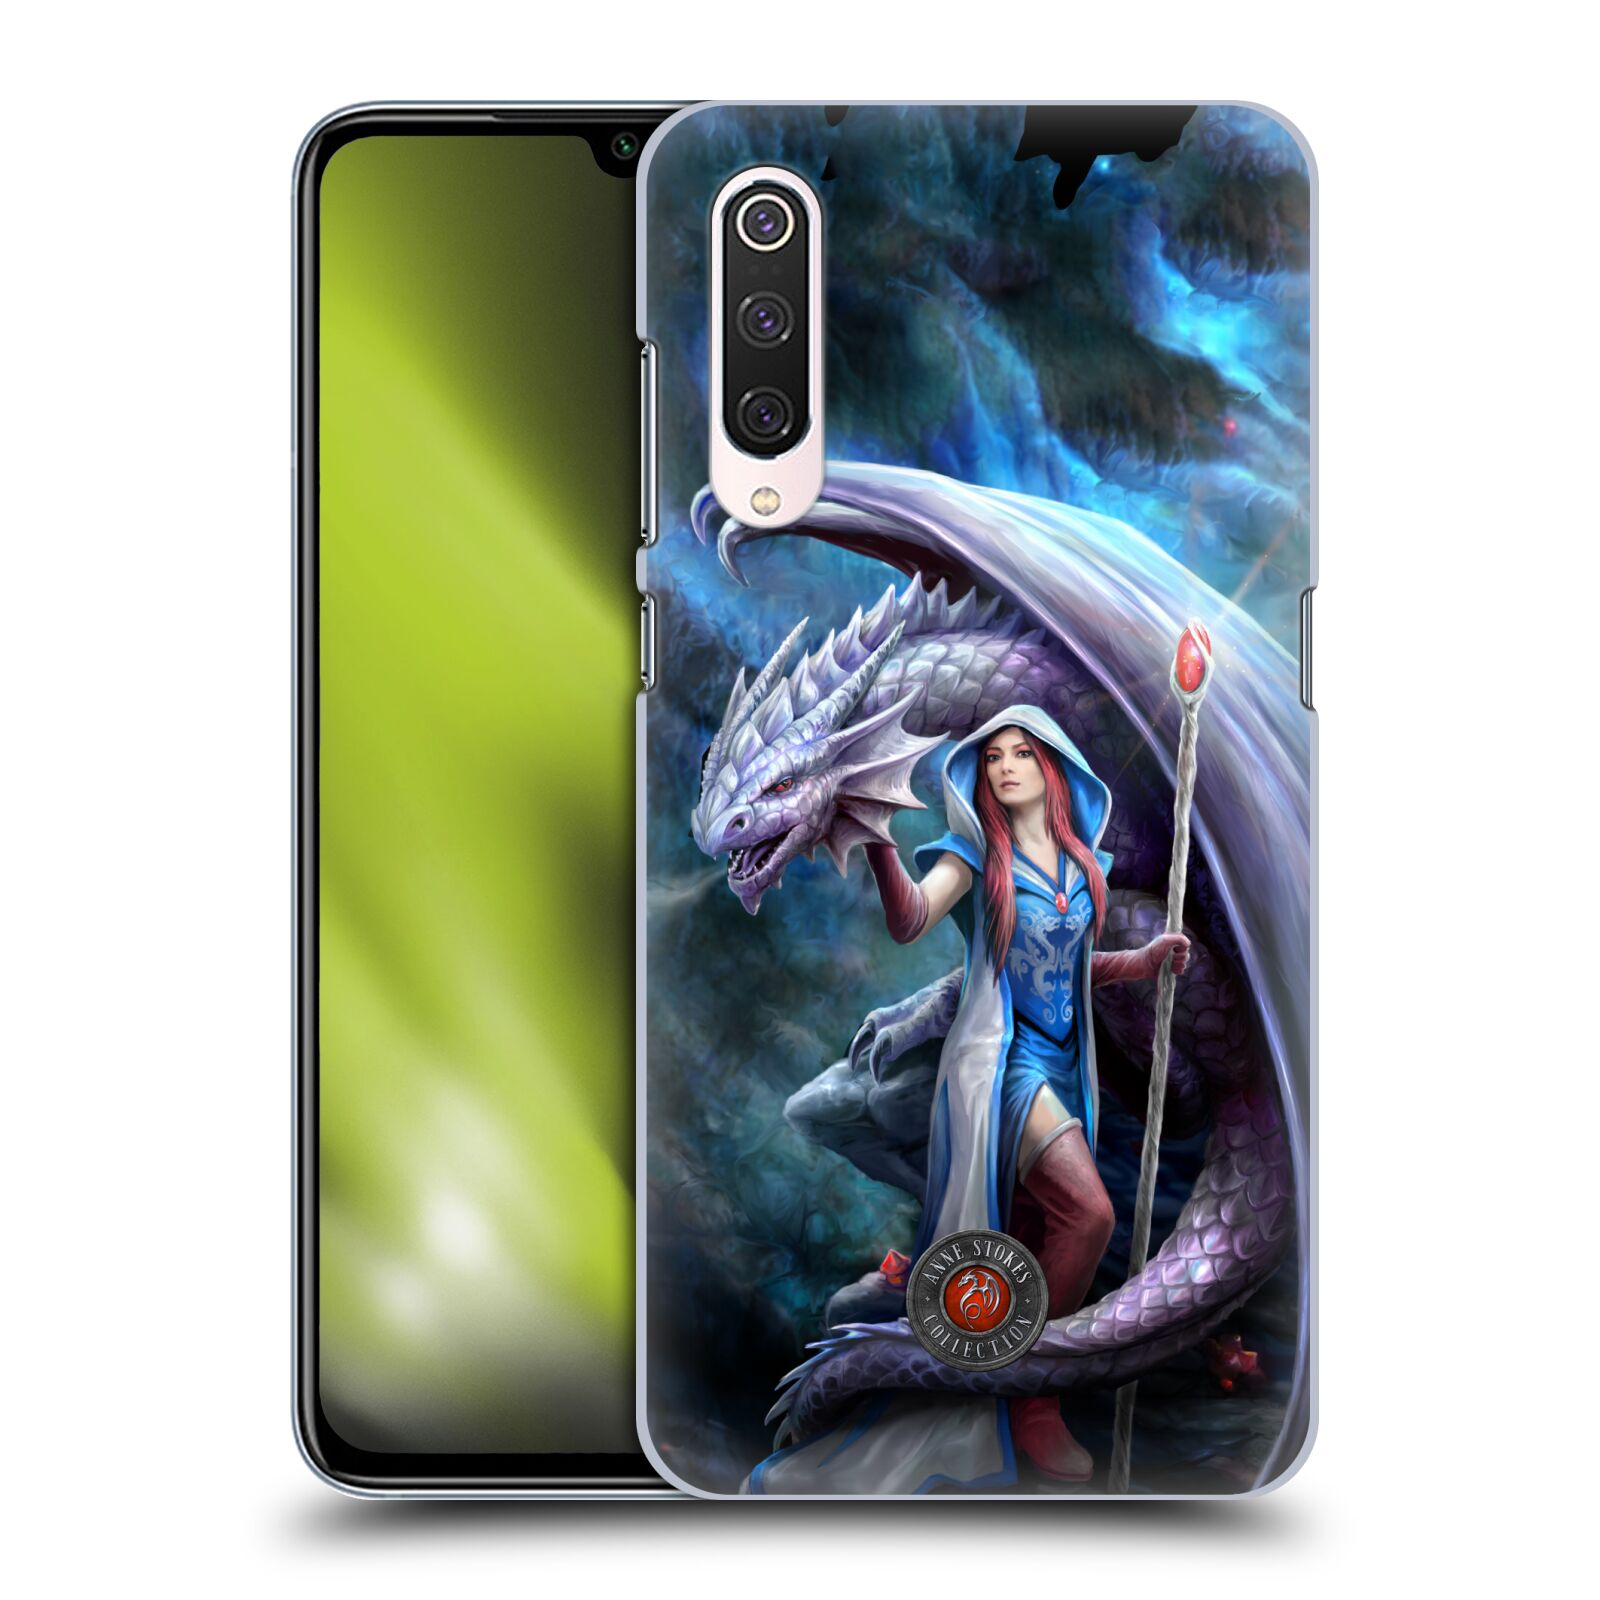 Official Anne Stokes Dragon Friendship 2 Mage Back Case for Xiaomi Mi 9 Pro / 5G